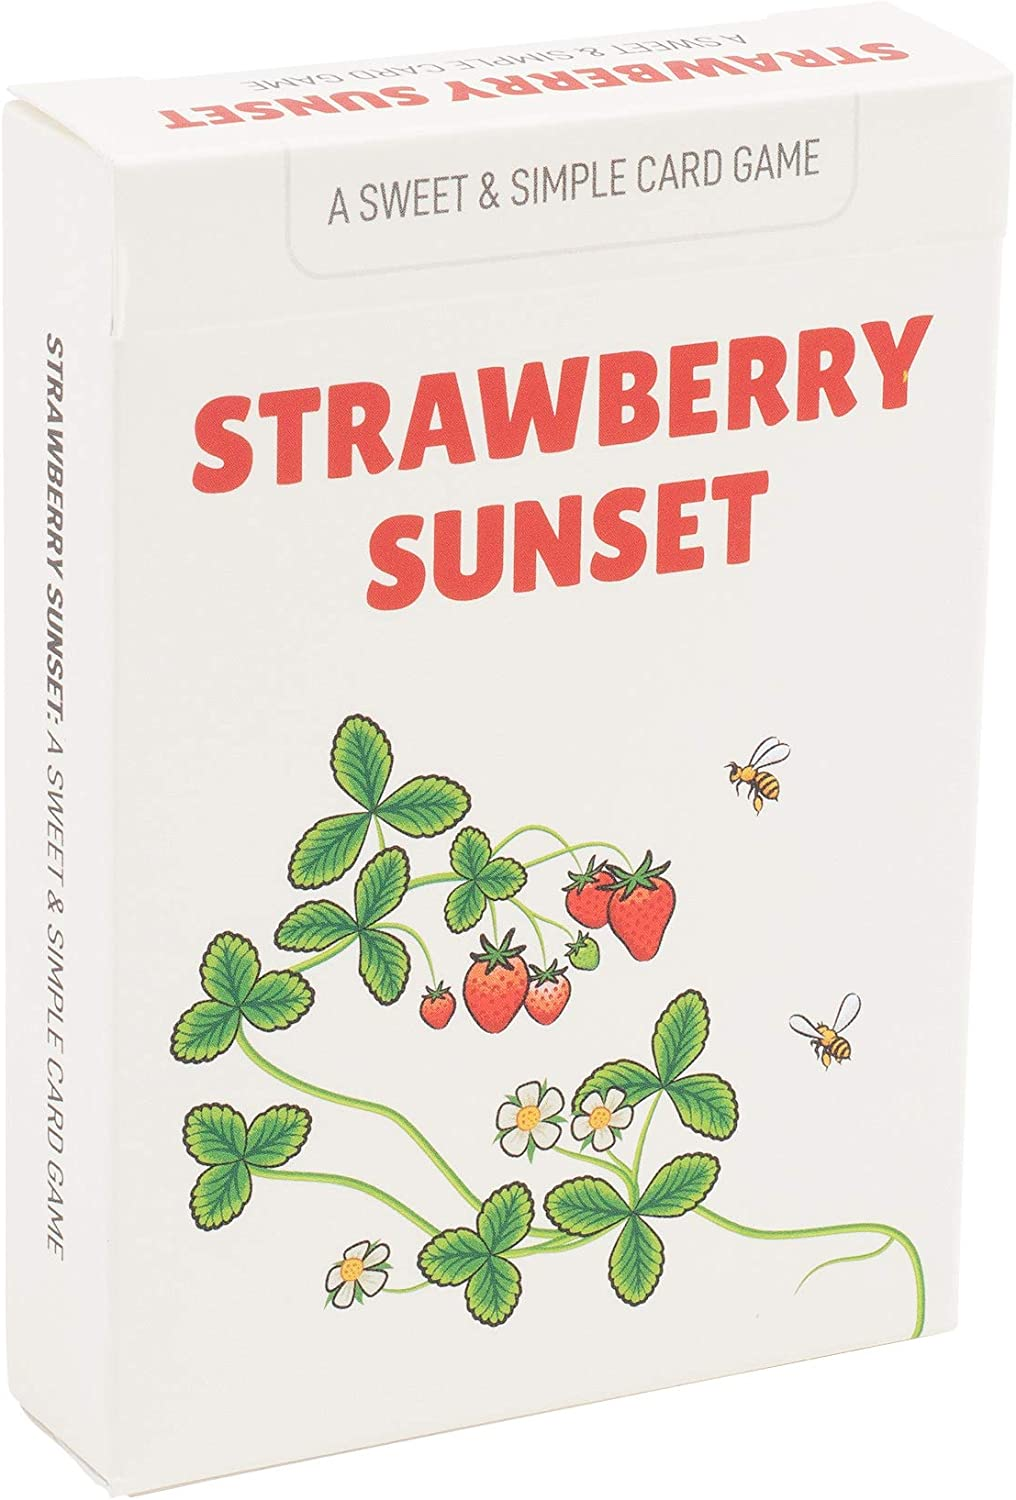 Strawberry Sunset: A Sweet & Simple Card Game